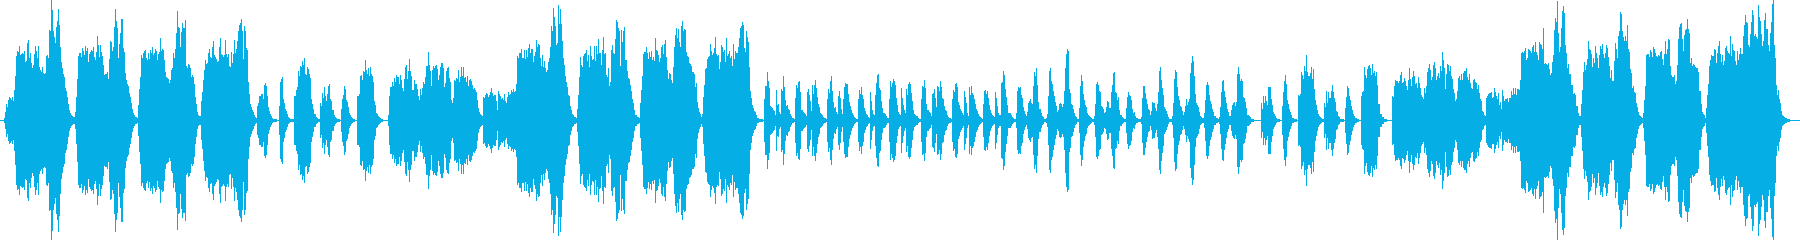 Classical and beautiful ballad's reproduced waveform